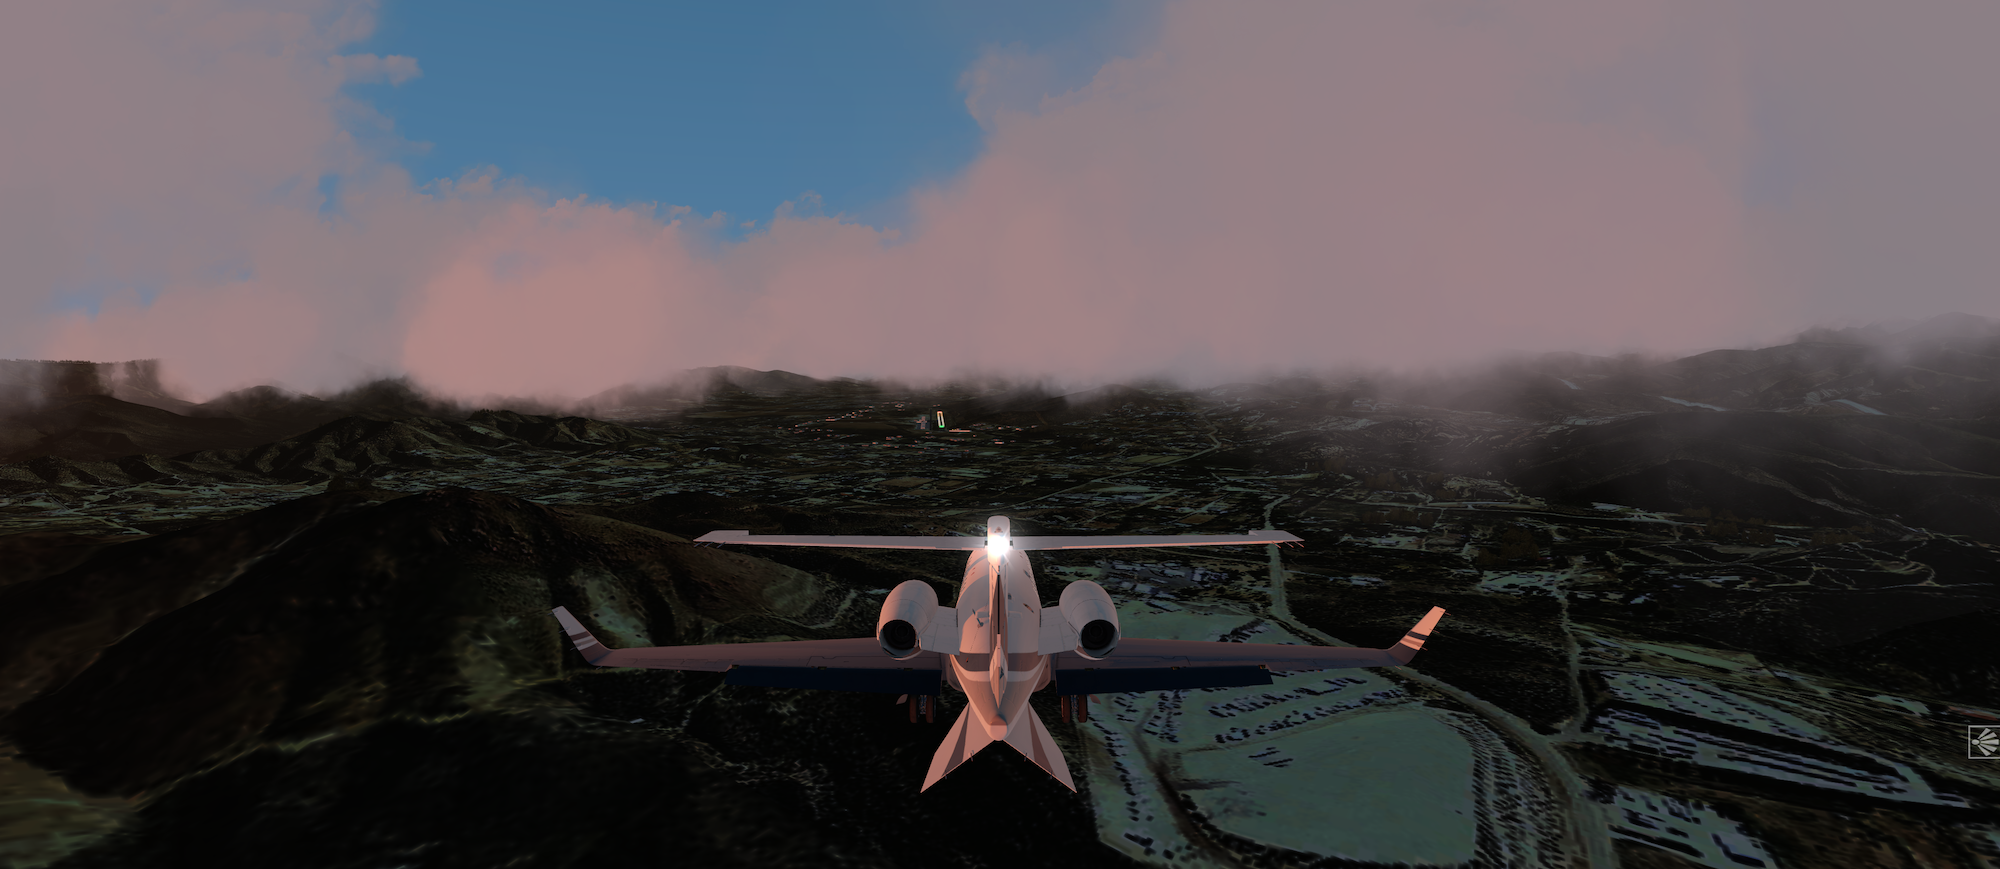 Breaking thru the clouds to land